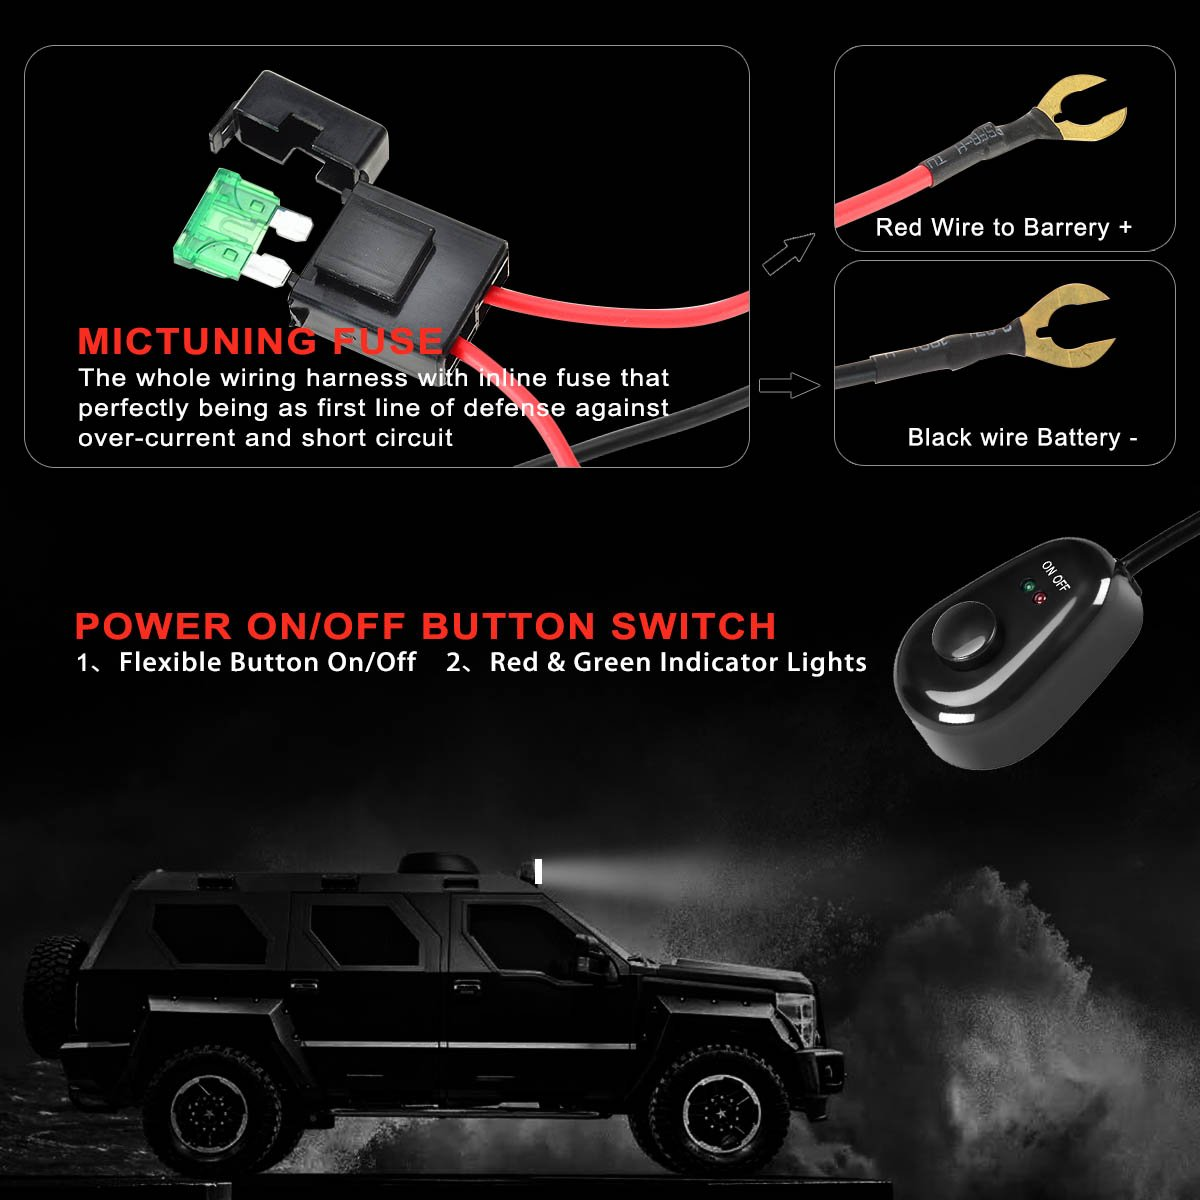 Kawell Wiring Harness Kit With Fuse 40 Amp Power Relay On Off Light Switch A First For Offroad Driving Led Work Fog Lights 2 Lead 65ft Car